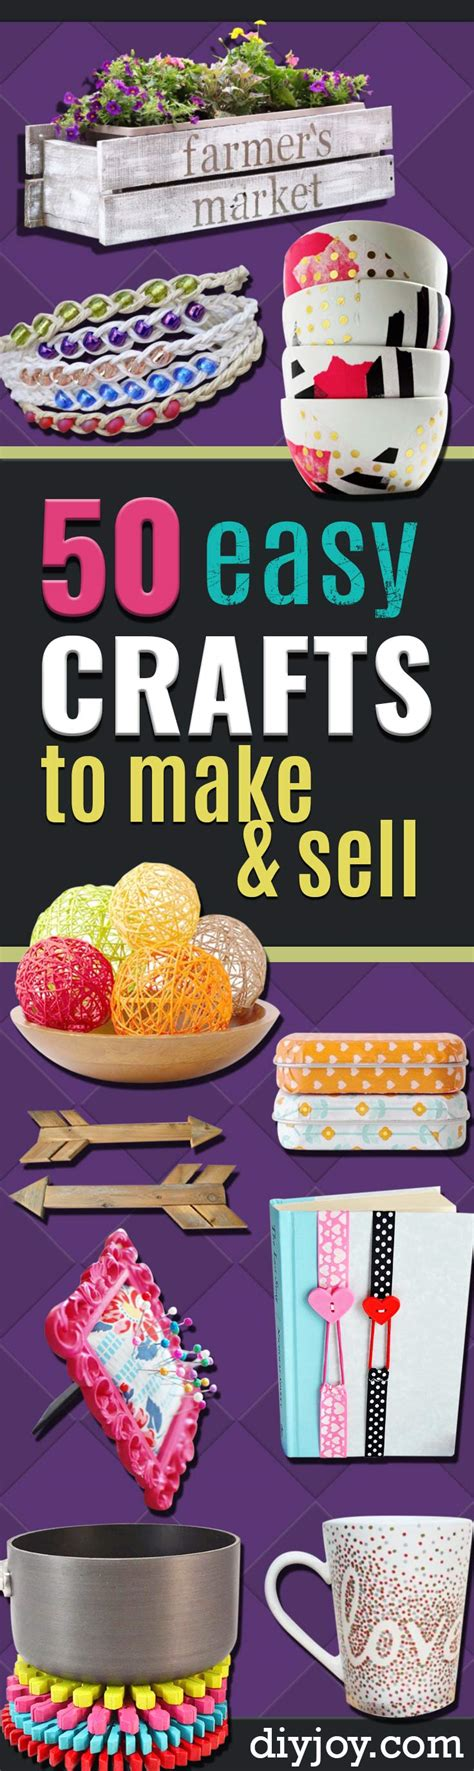 easy crafts    sell